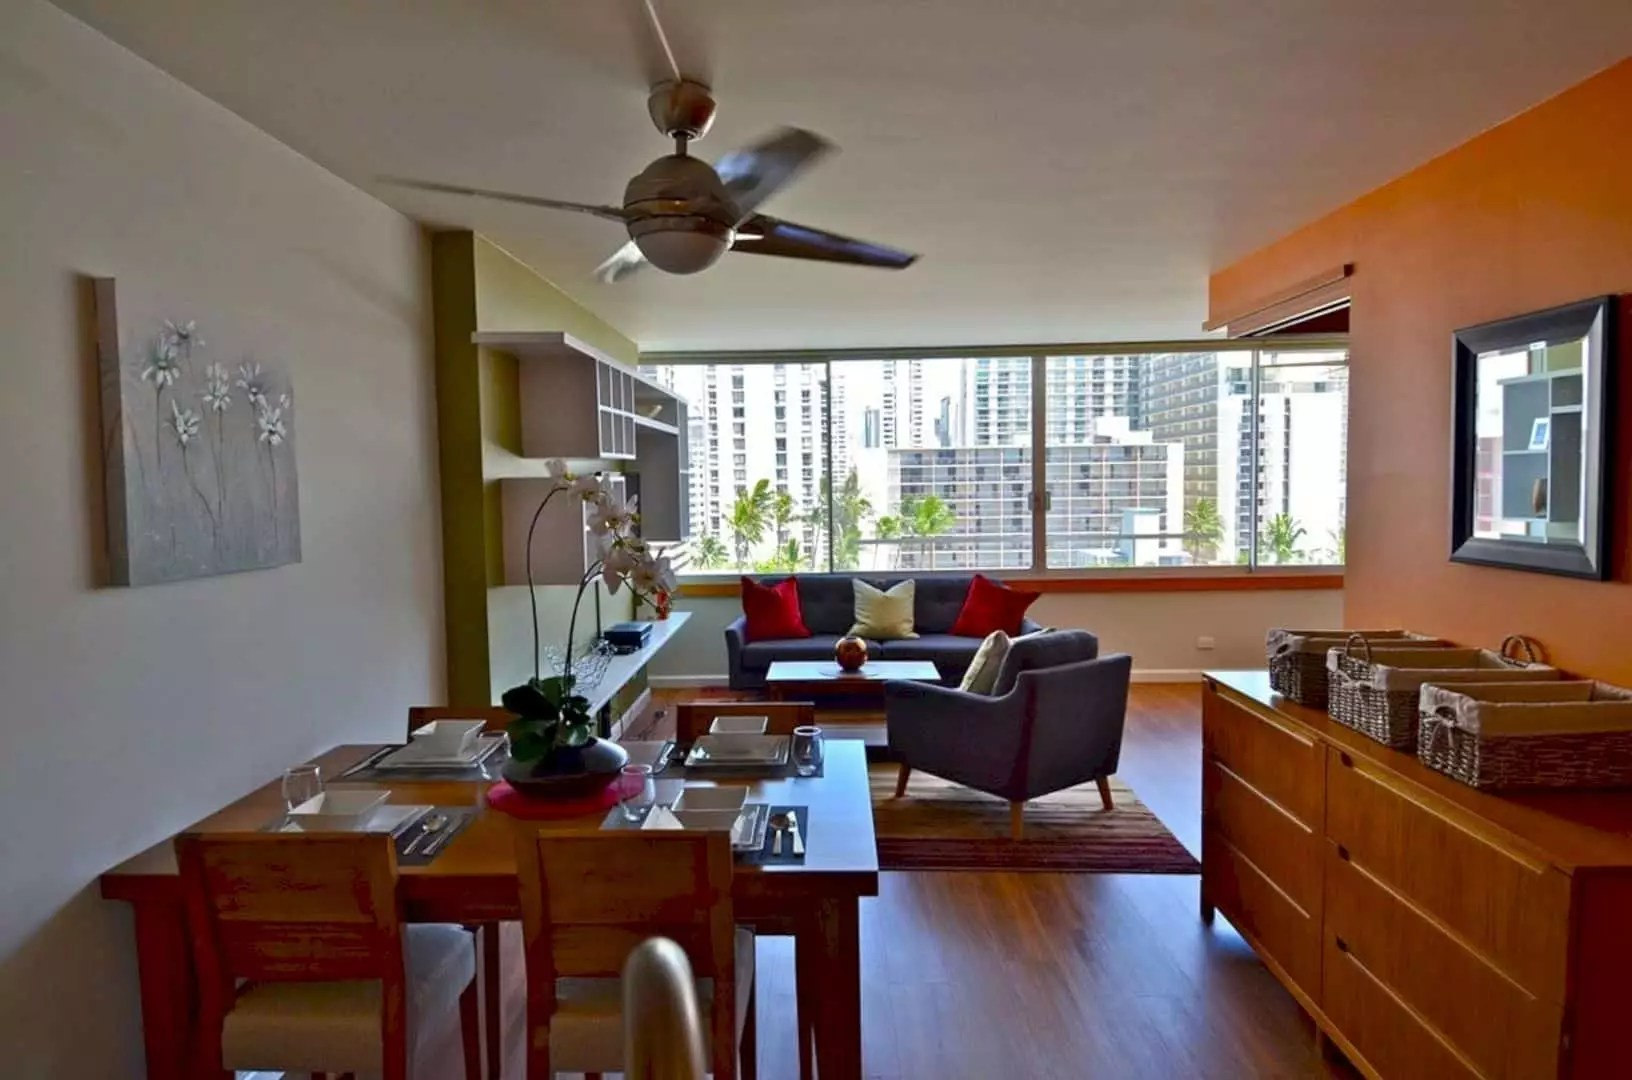 Honolulu Renovation: Simple Interior of Small Living Place with Spacious and Luxury Feeling